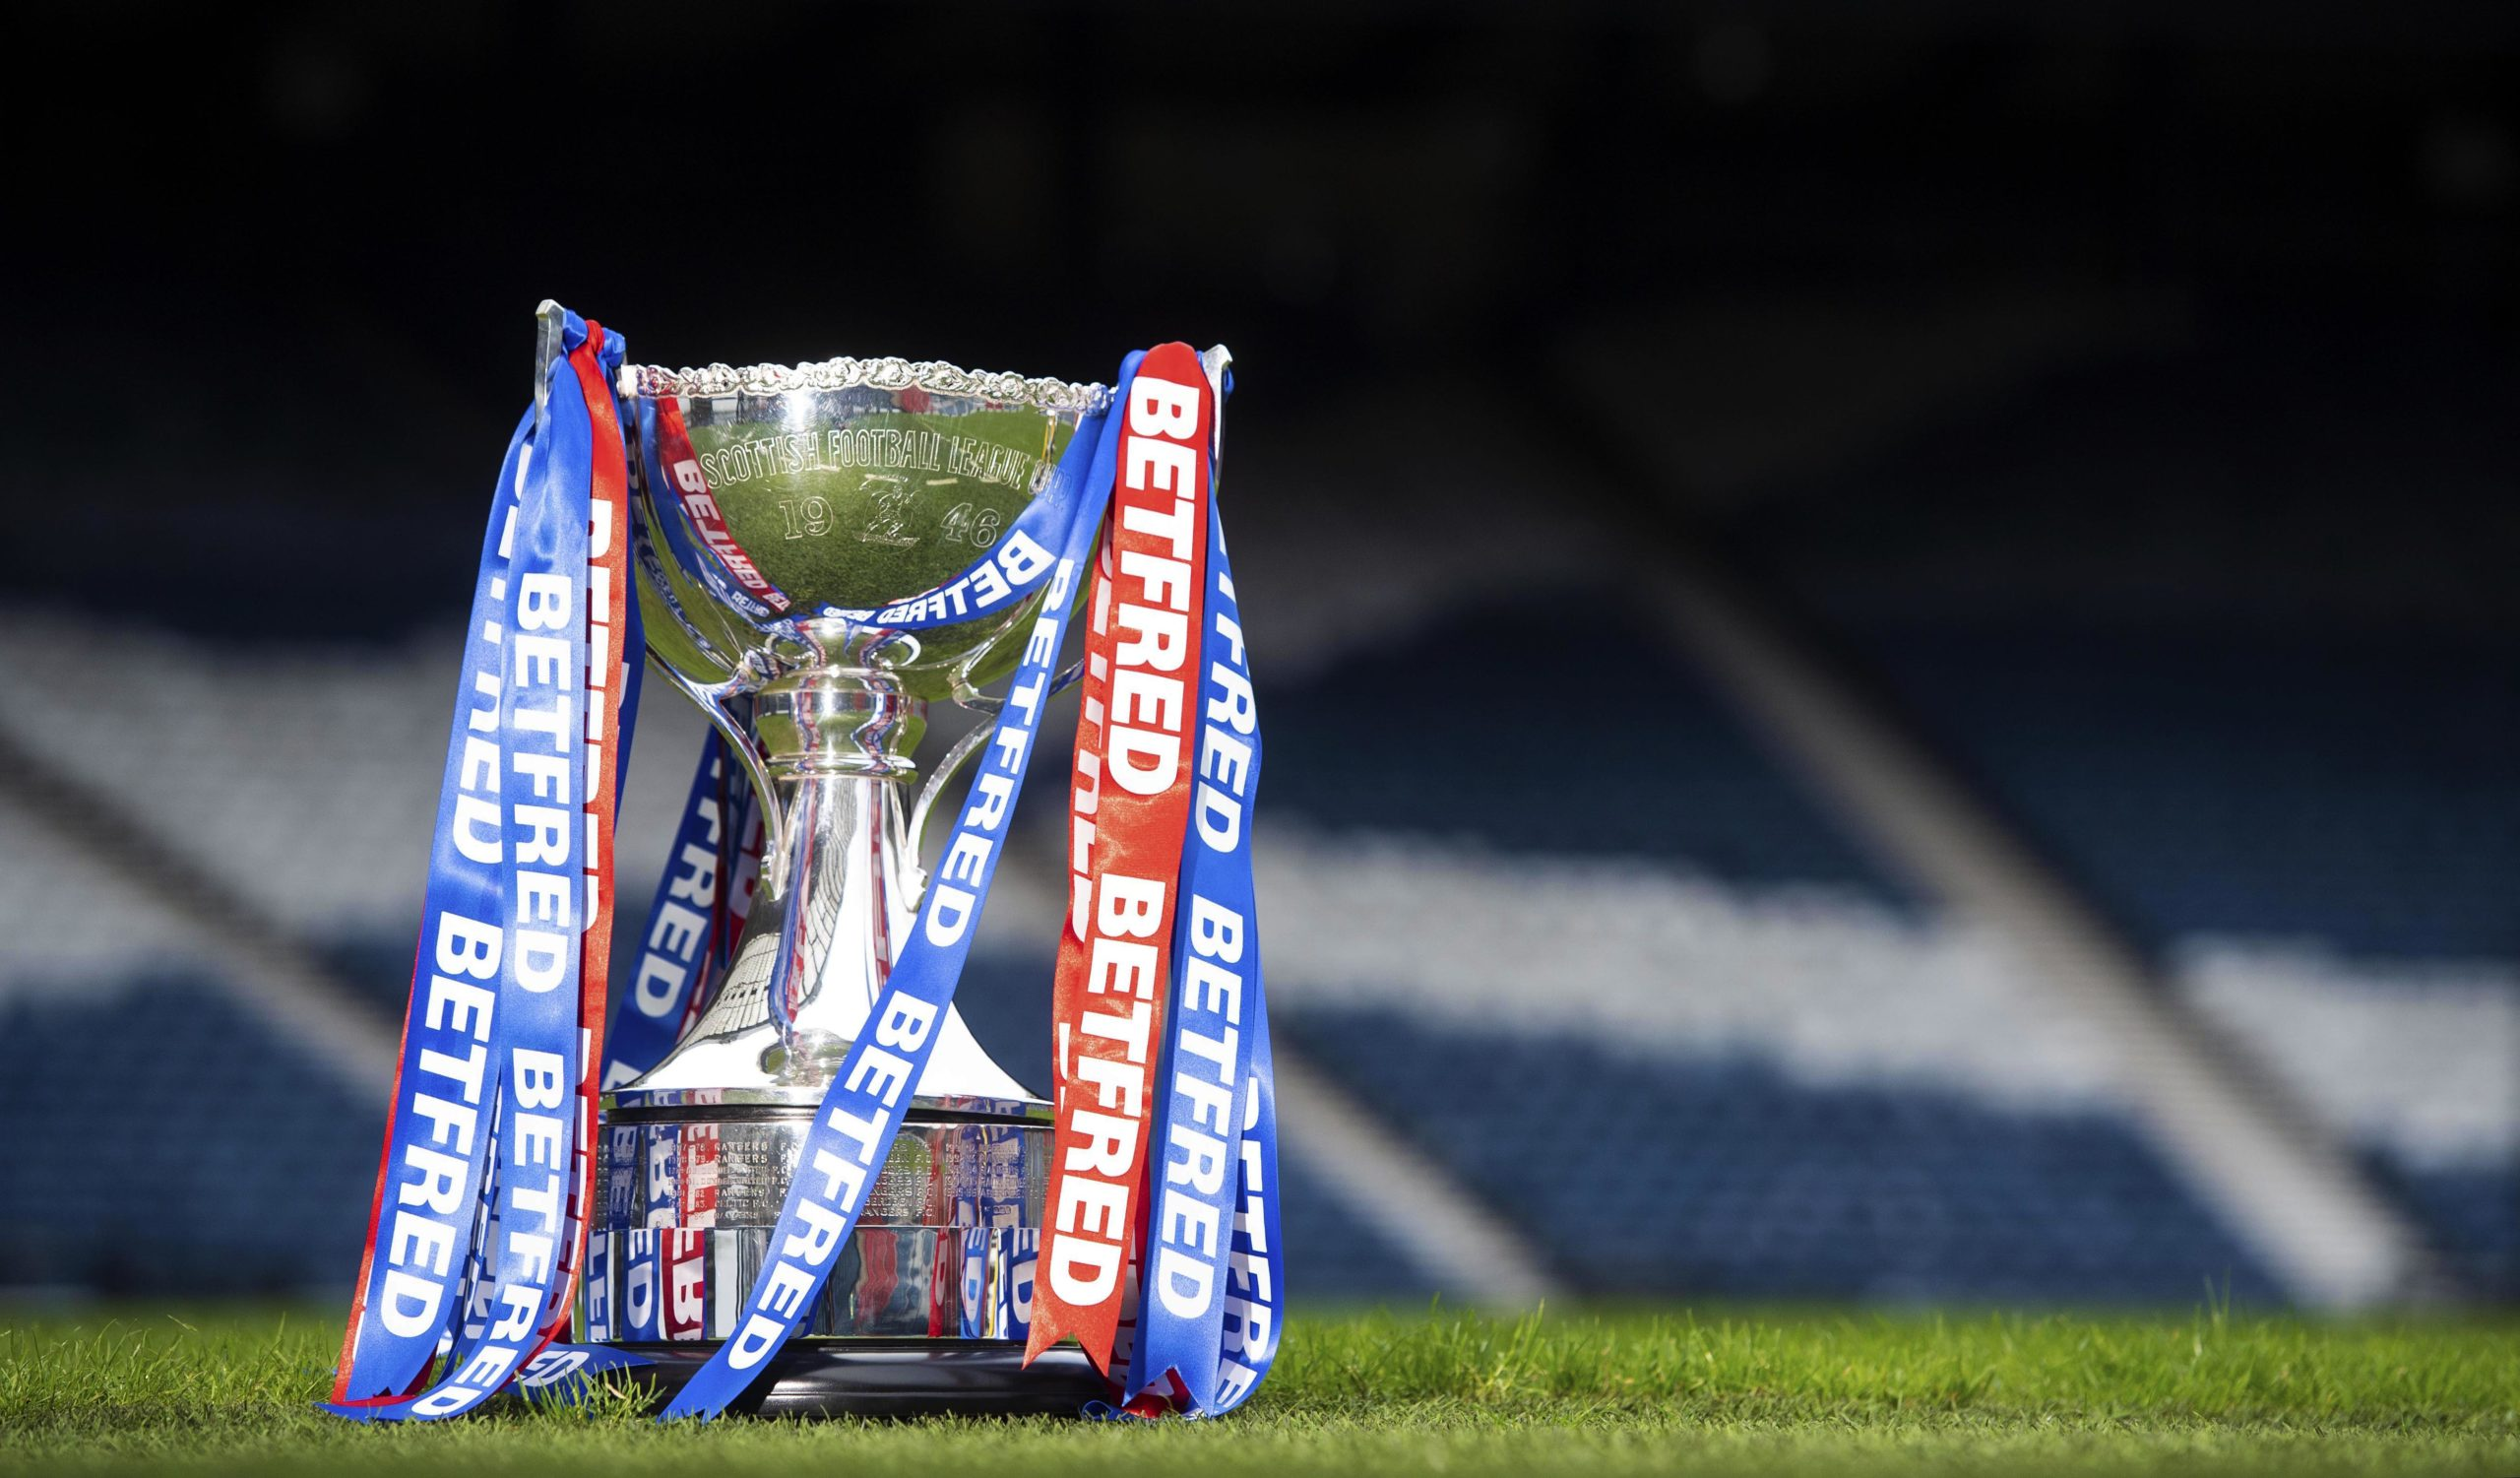 Betfred Cup draw took place this afternoon